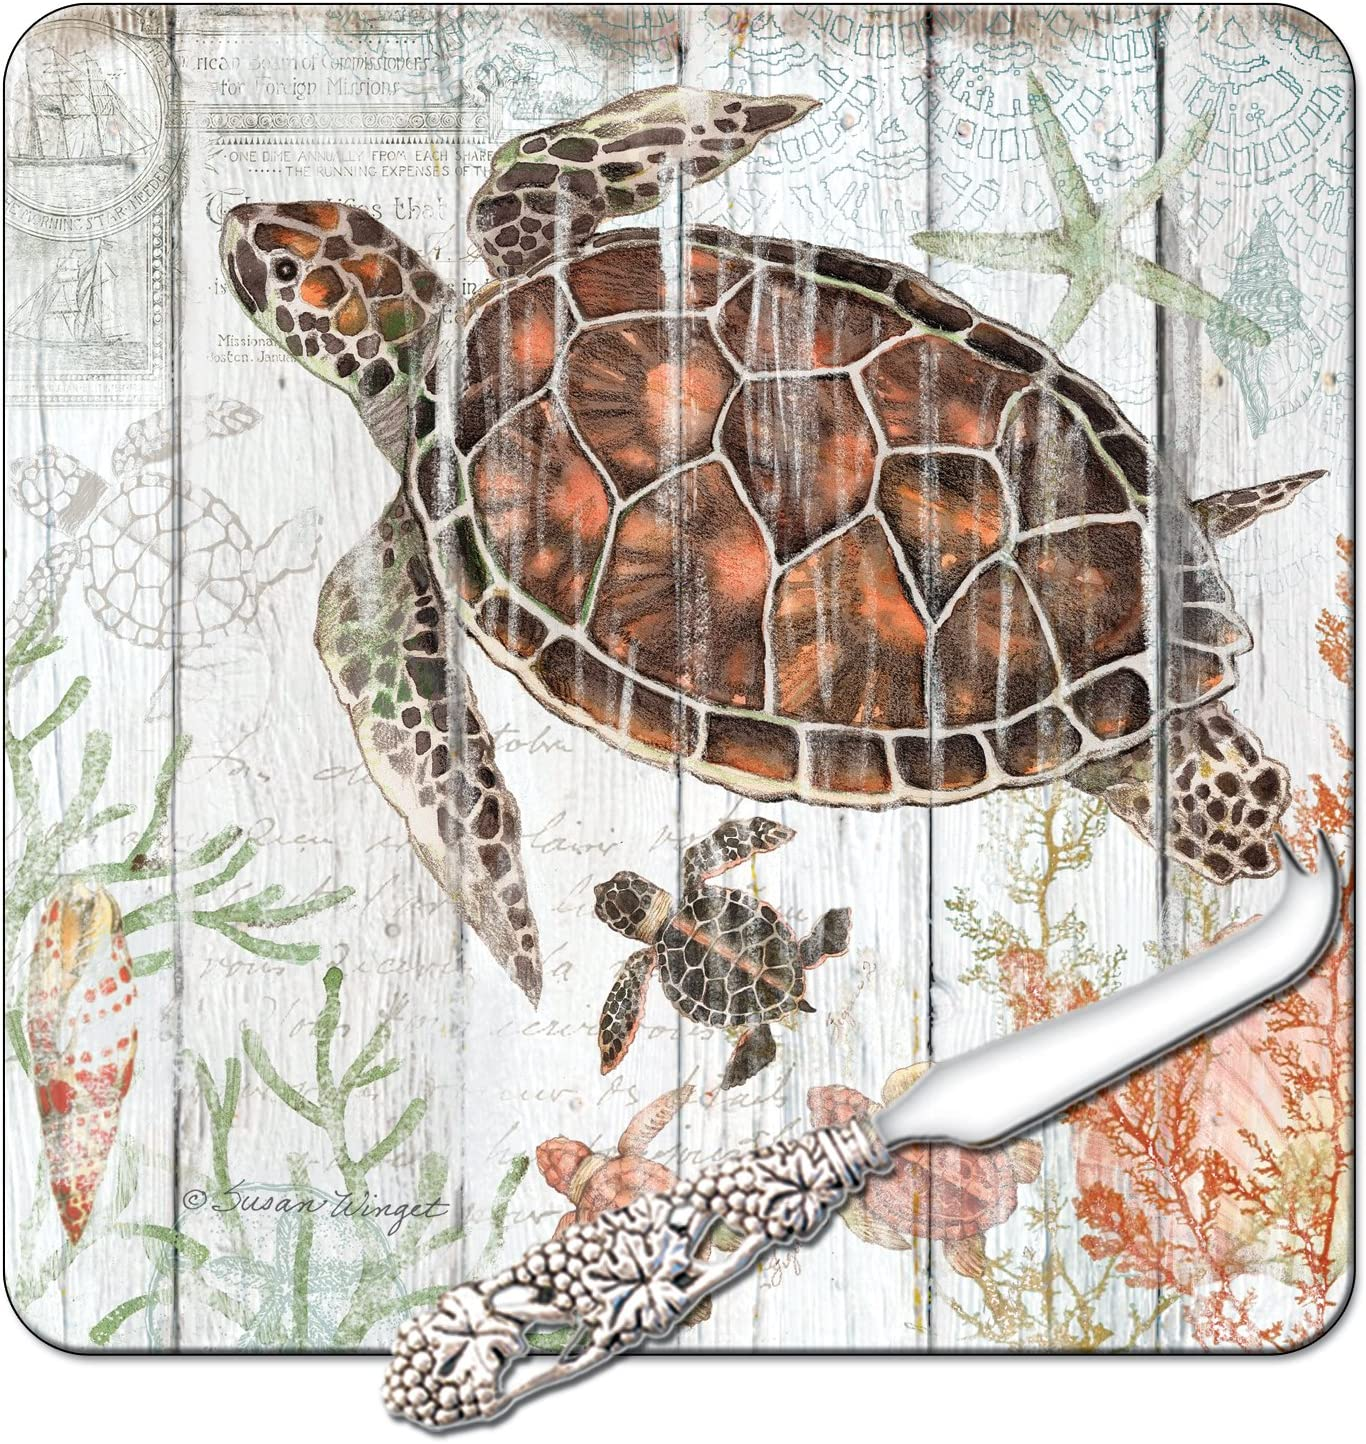 CounterArt 8インチガラスCheese Serving Board withチーズナイフ、Turtles、Sealife